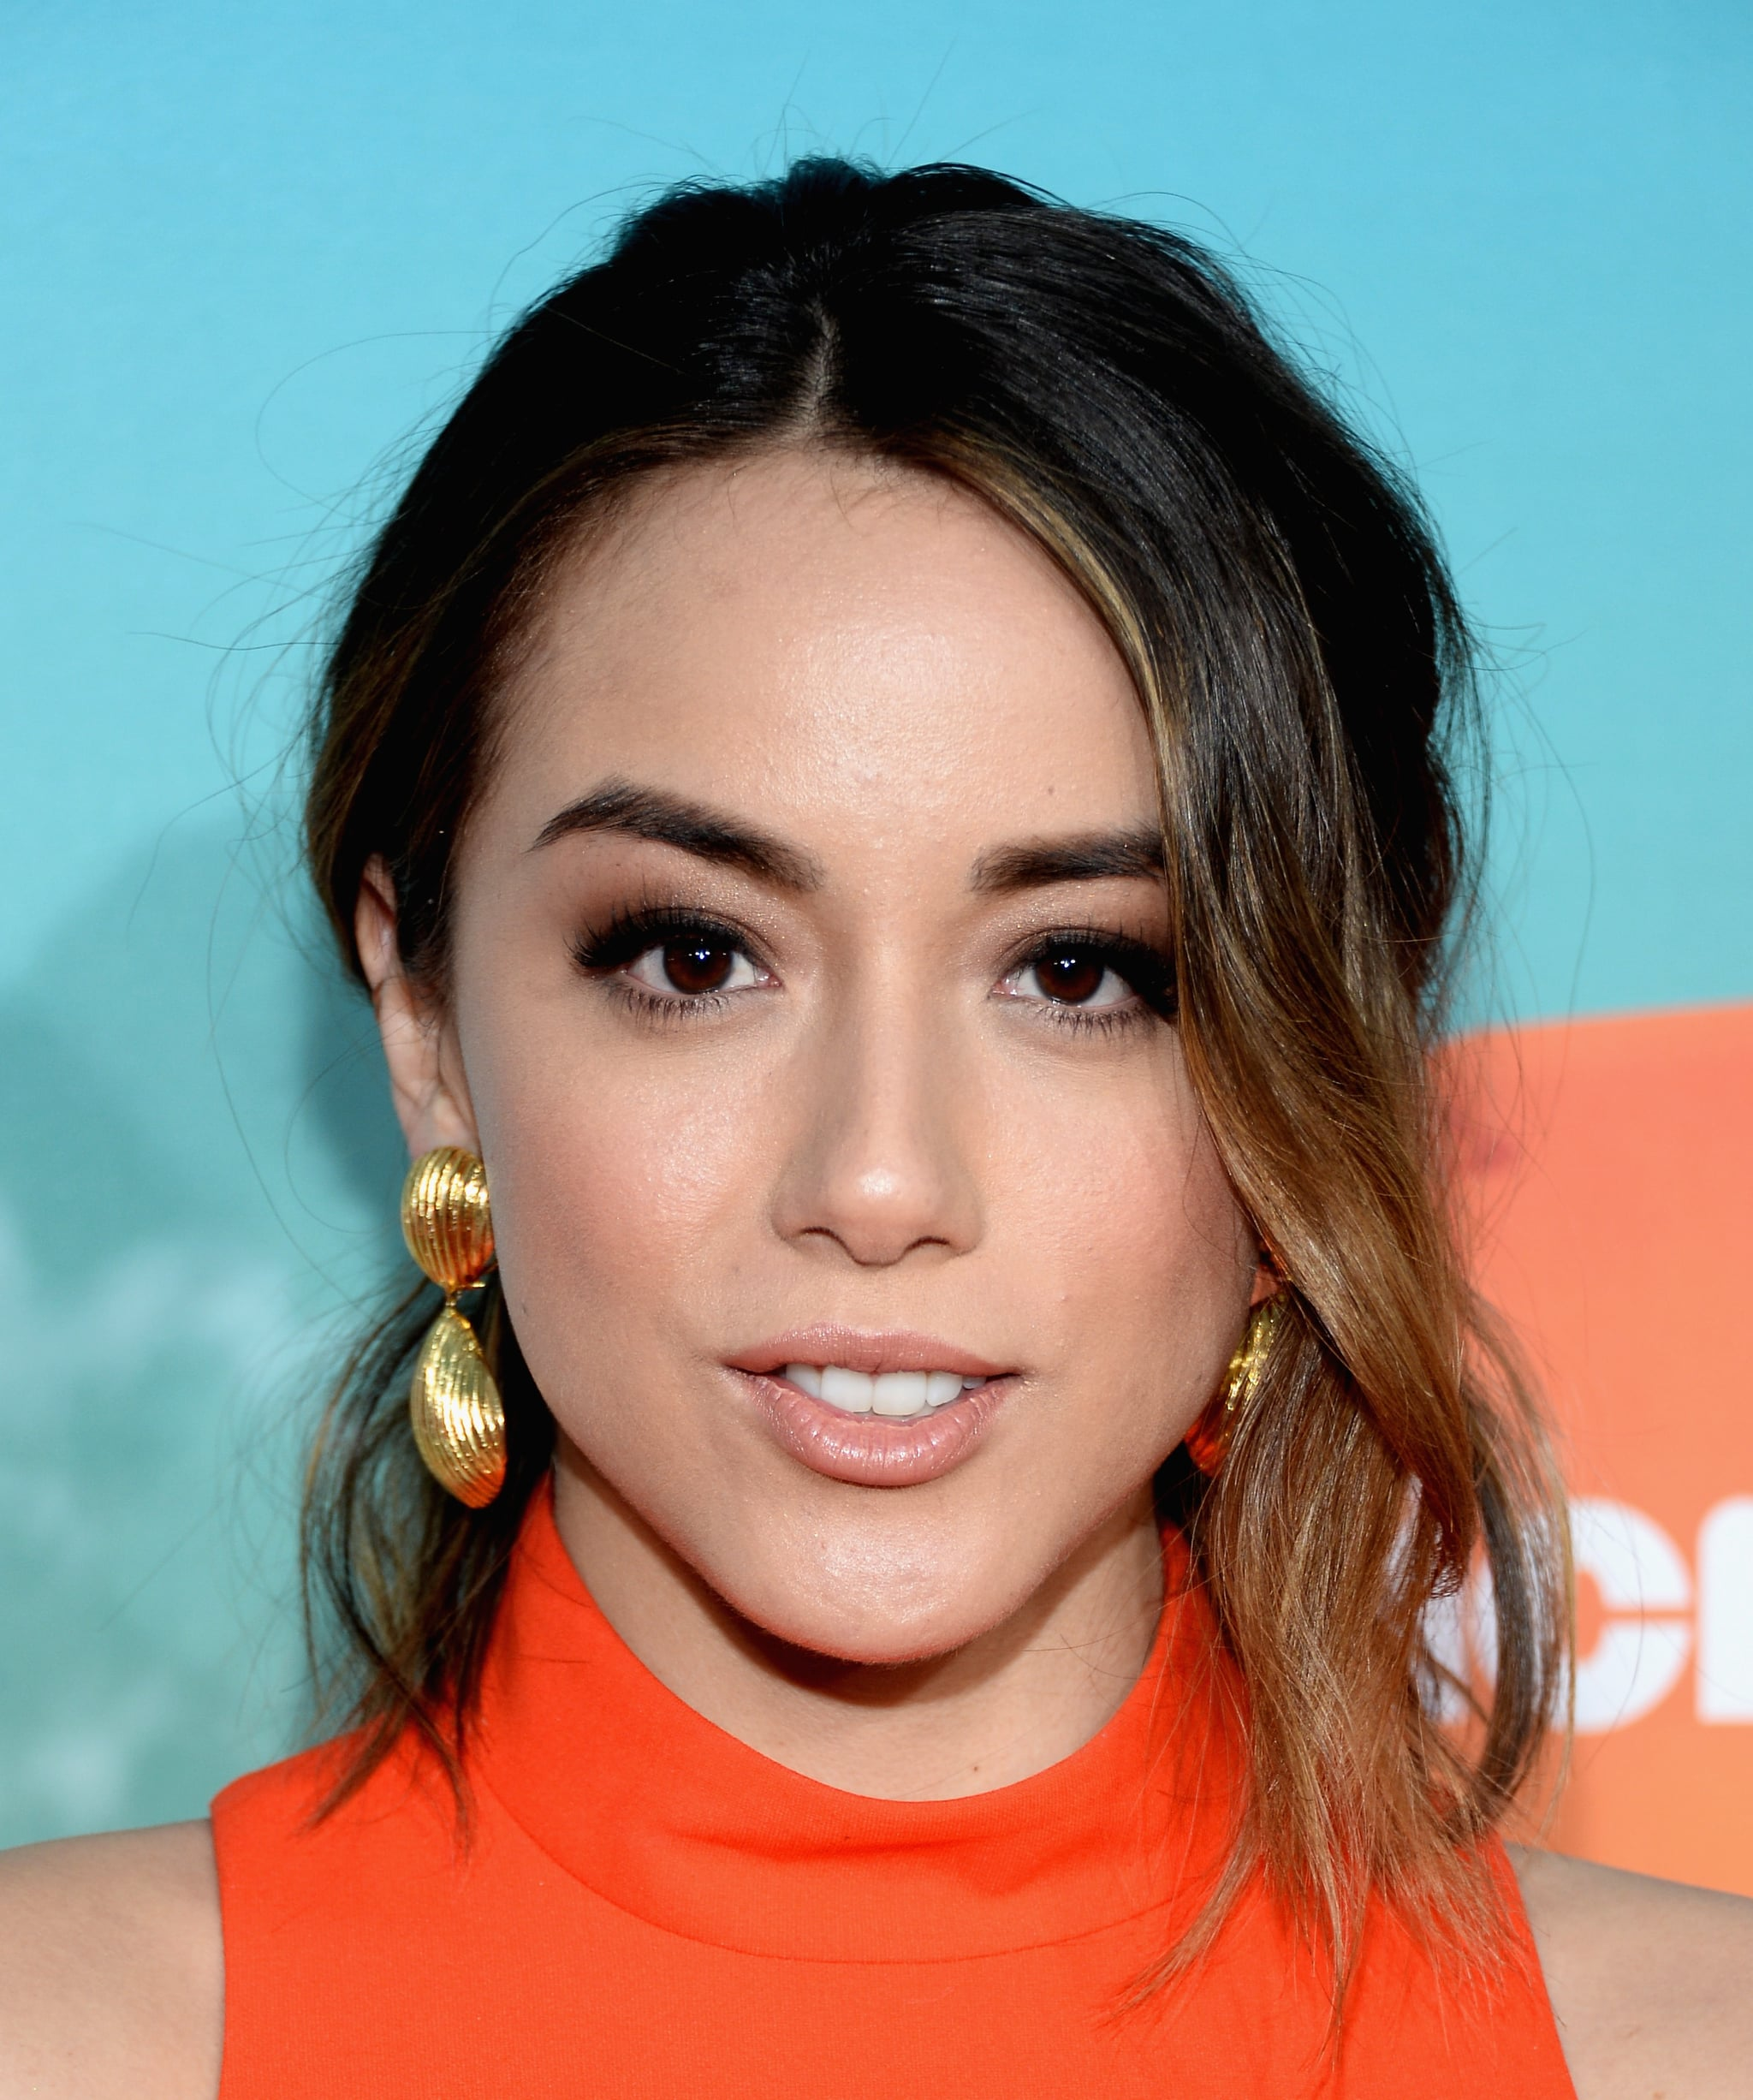 INGLEWOOD, CA - MARCH 12:  Actress Chloe Bennet attends Nickelodeon's 2016 Kids' Choice Awards at The Forum on March 12, 2016 in Inglewood, California.  (Photo by Frazer Harrison/Getty Images)